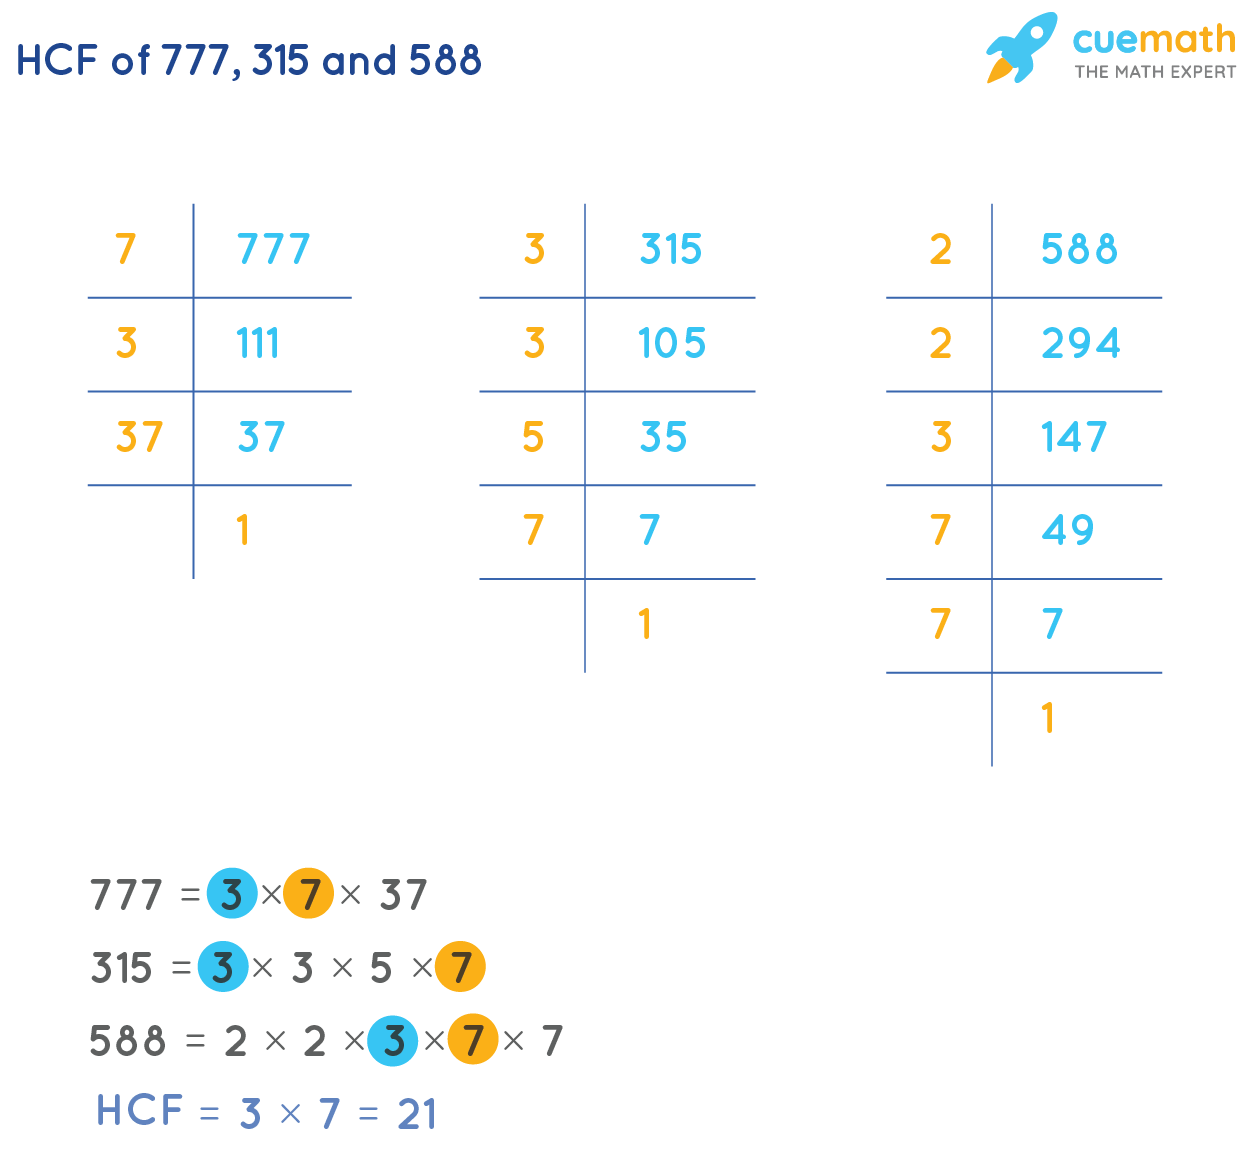 HCF of 777, 315 and 588